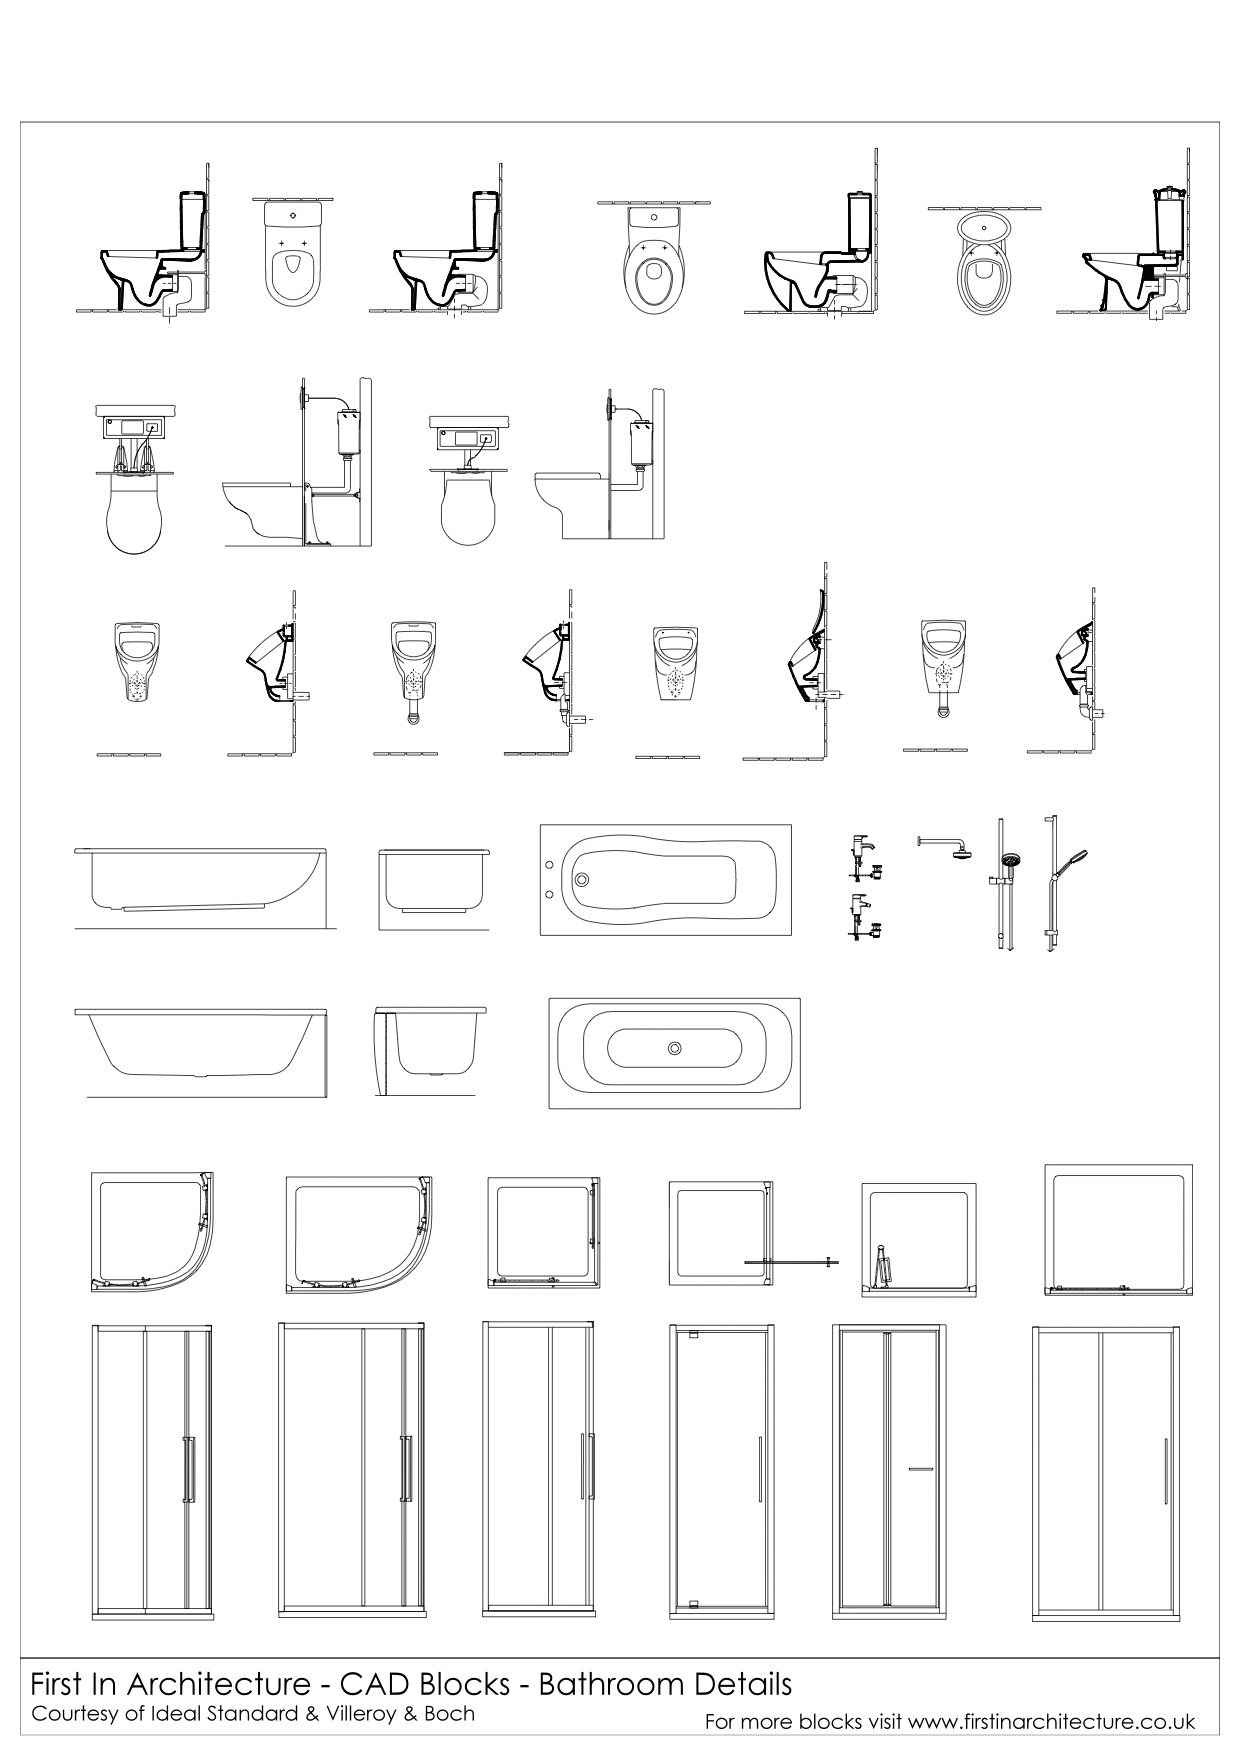 Free CAD Blocks Bathroom Details - Bathroom cad blocks